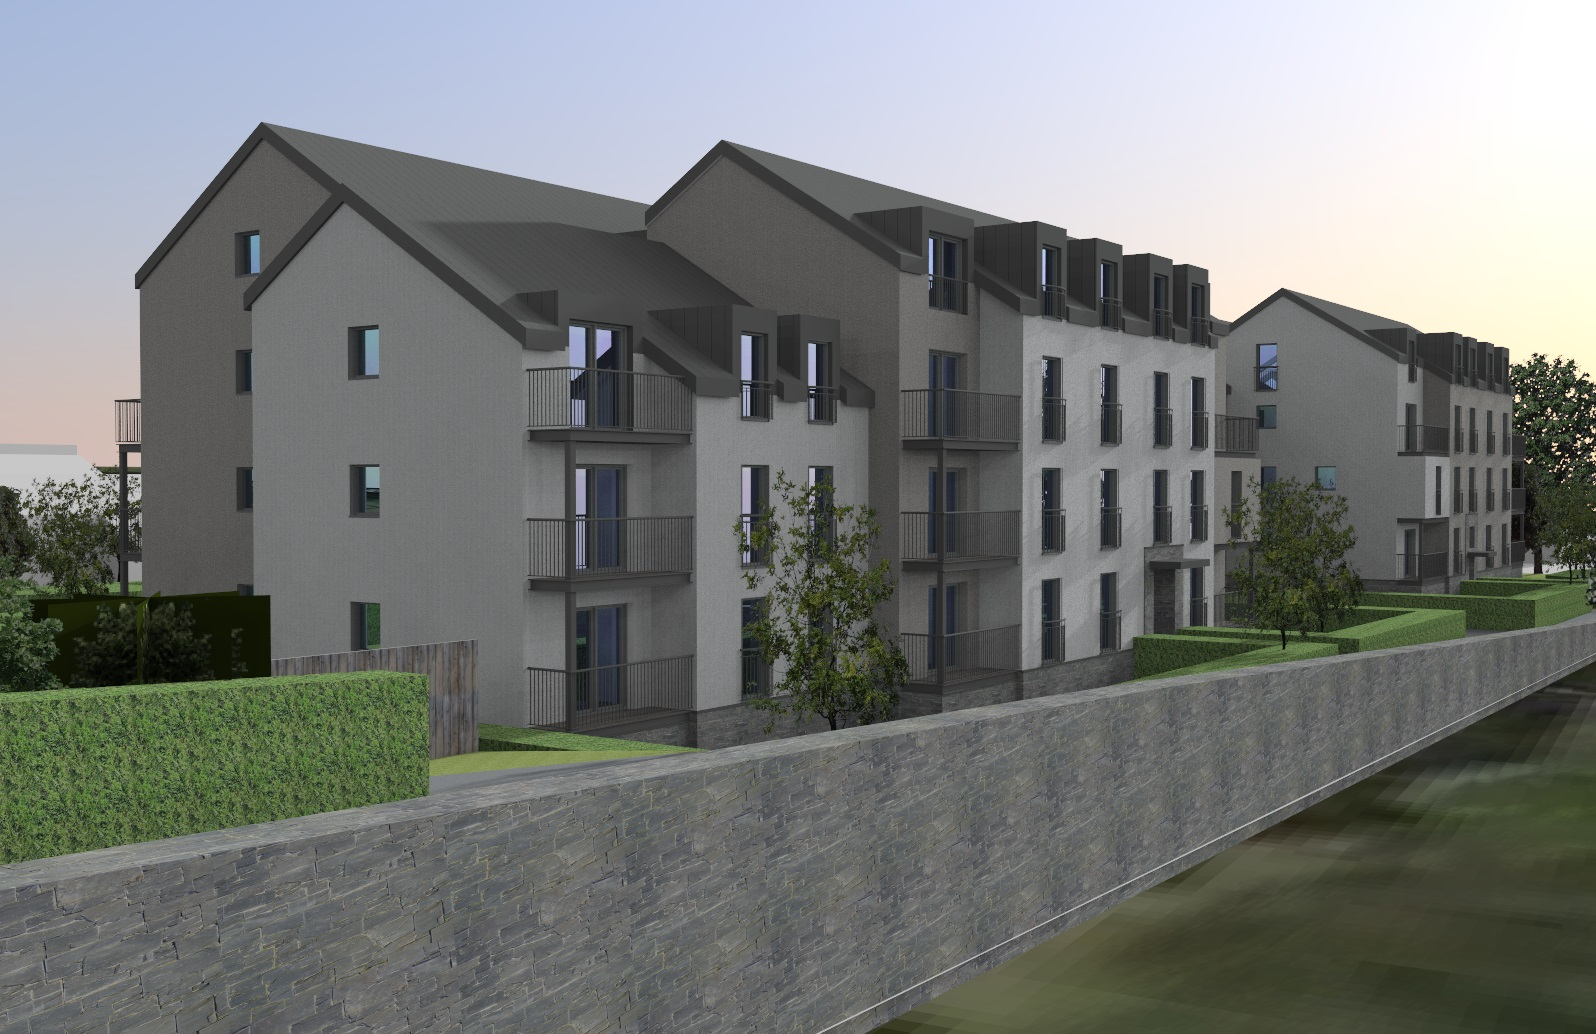 New figures underline huge need for affordable housing in Peebles